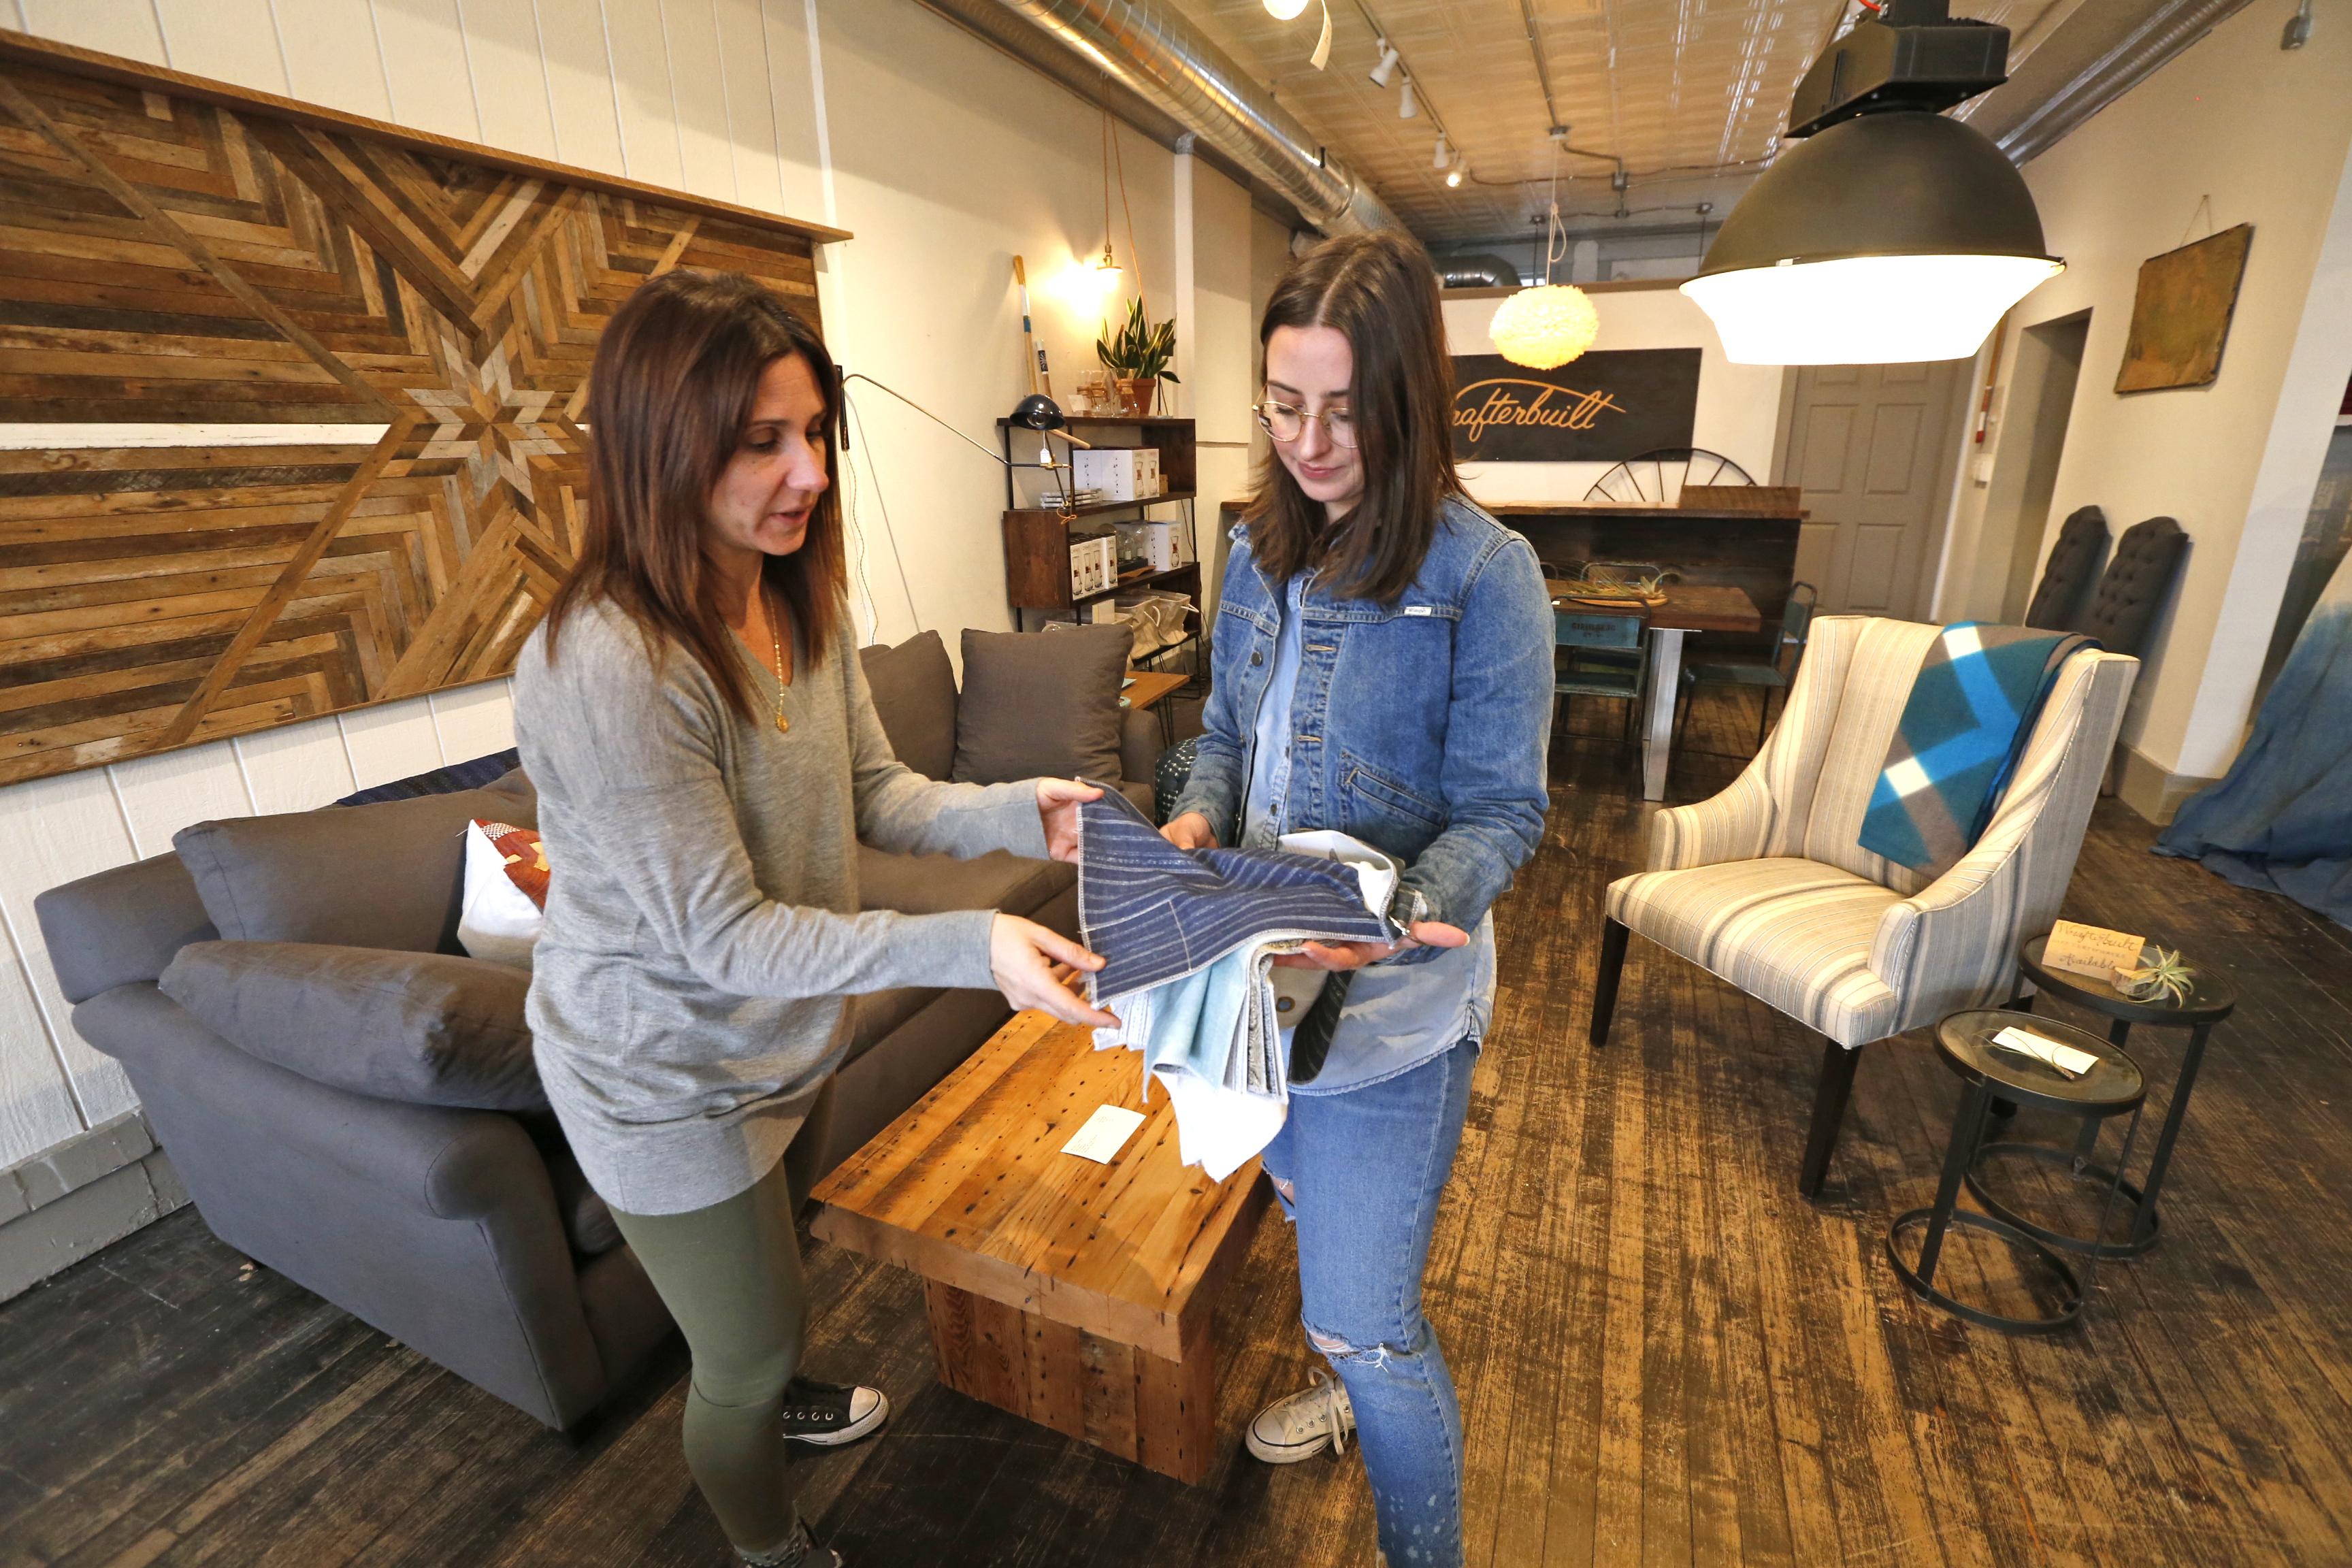 Bri Klejdys-Long, left, owner of Modern Nostalgia, and Jackie Wrafter, owner of Wrafterbuilt Furniture, examine fabrics in their shared space on Hertel Avenue. (Robert Kirkham/Buffalo News)